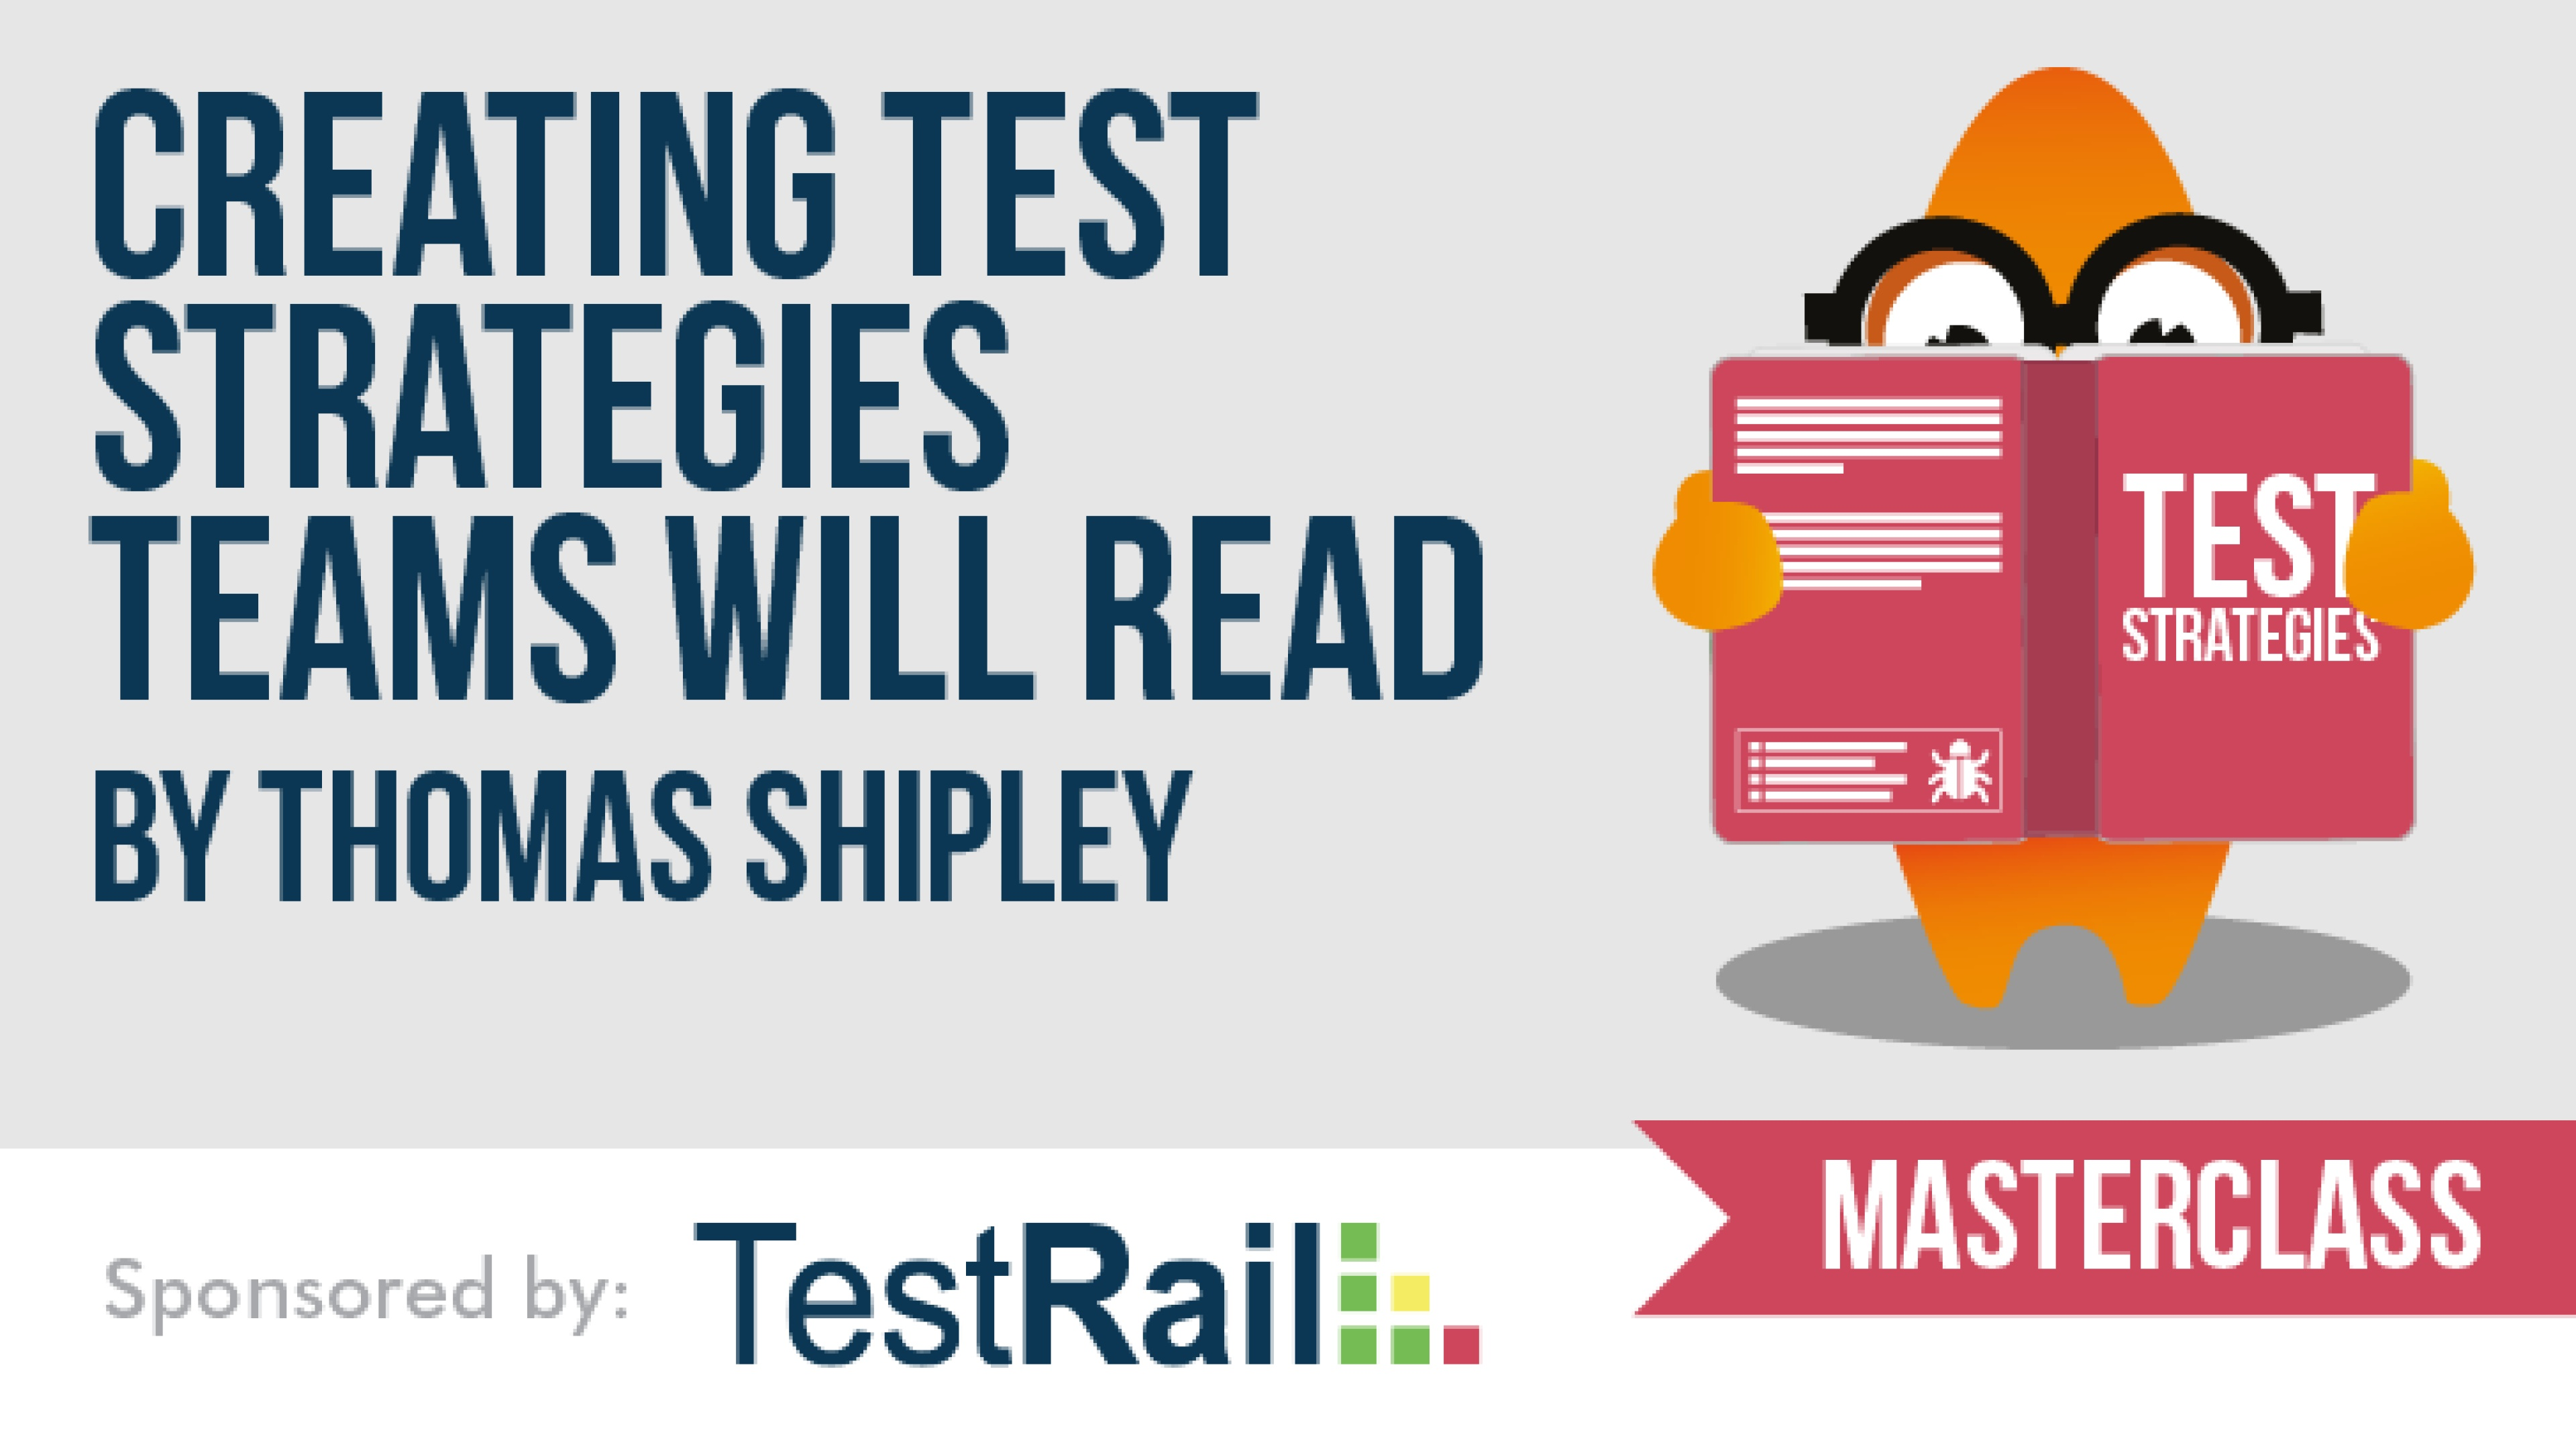 Creating Test Strategies Teams Will Read with Thomas Shipley